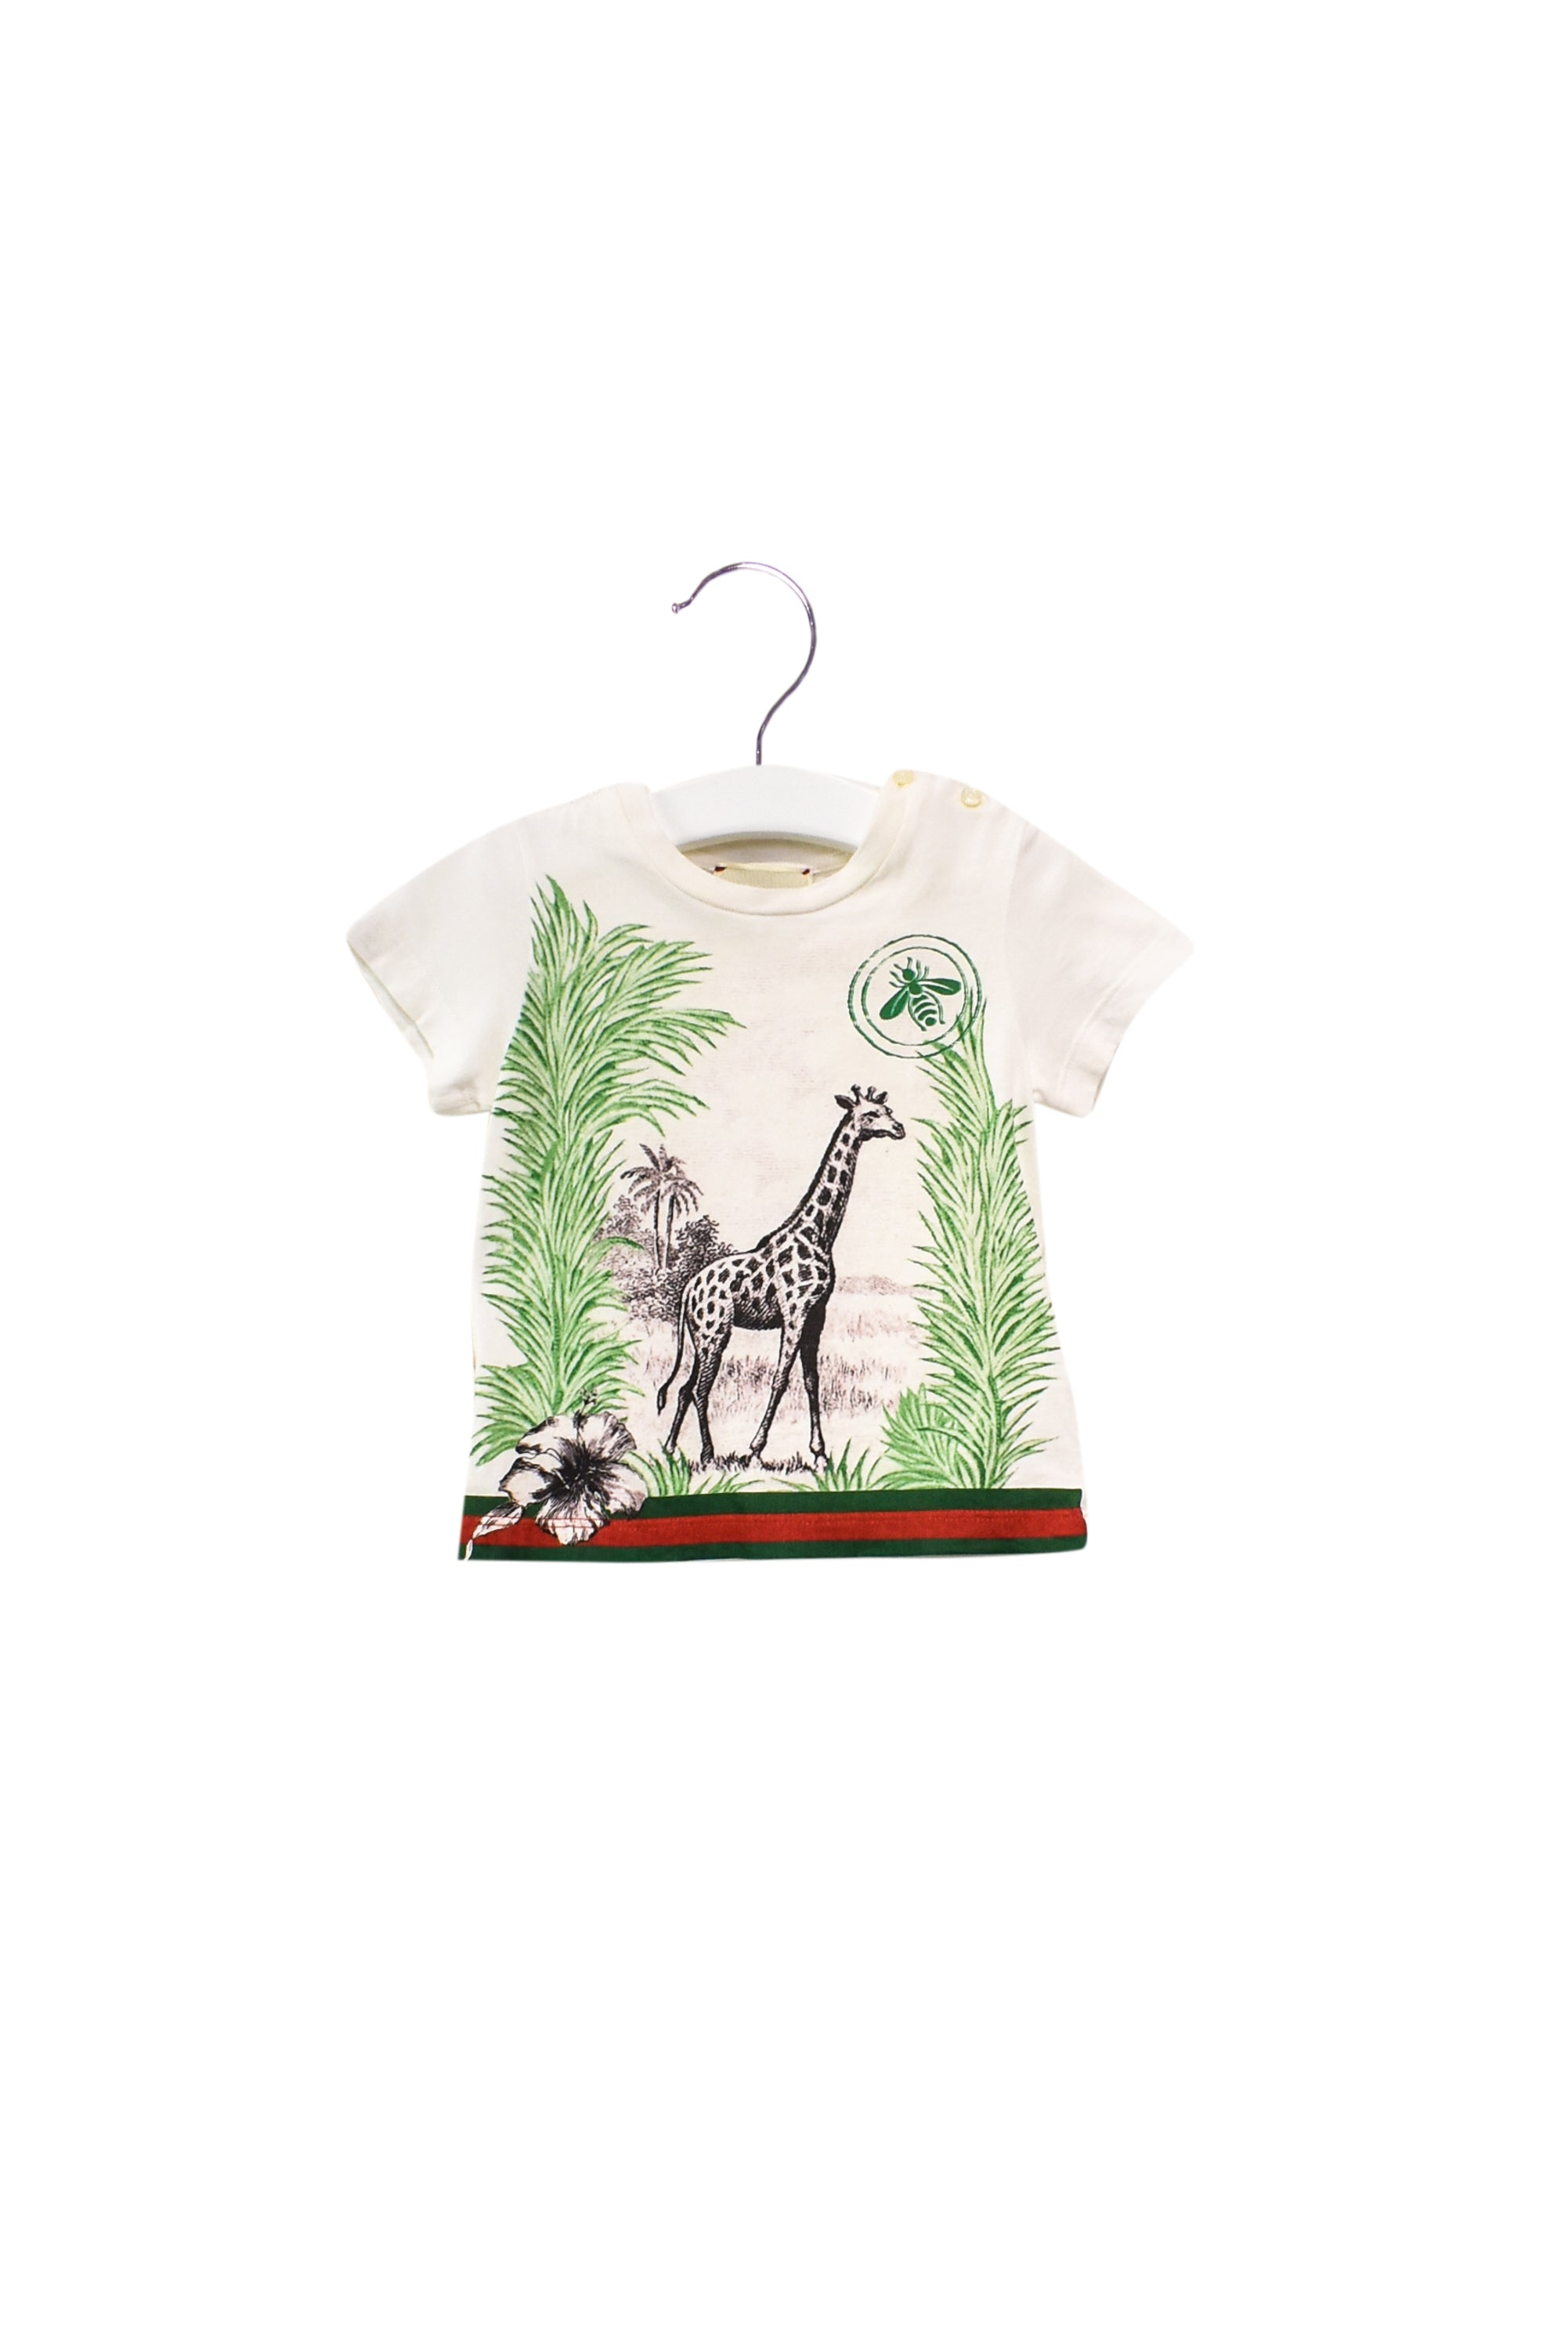 b354932f6 10026902 Gucci Baby~T-Shirt and Bloomer Set 9-12M at Retykle